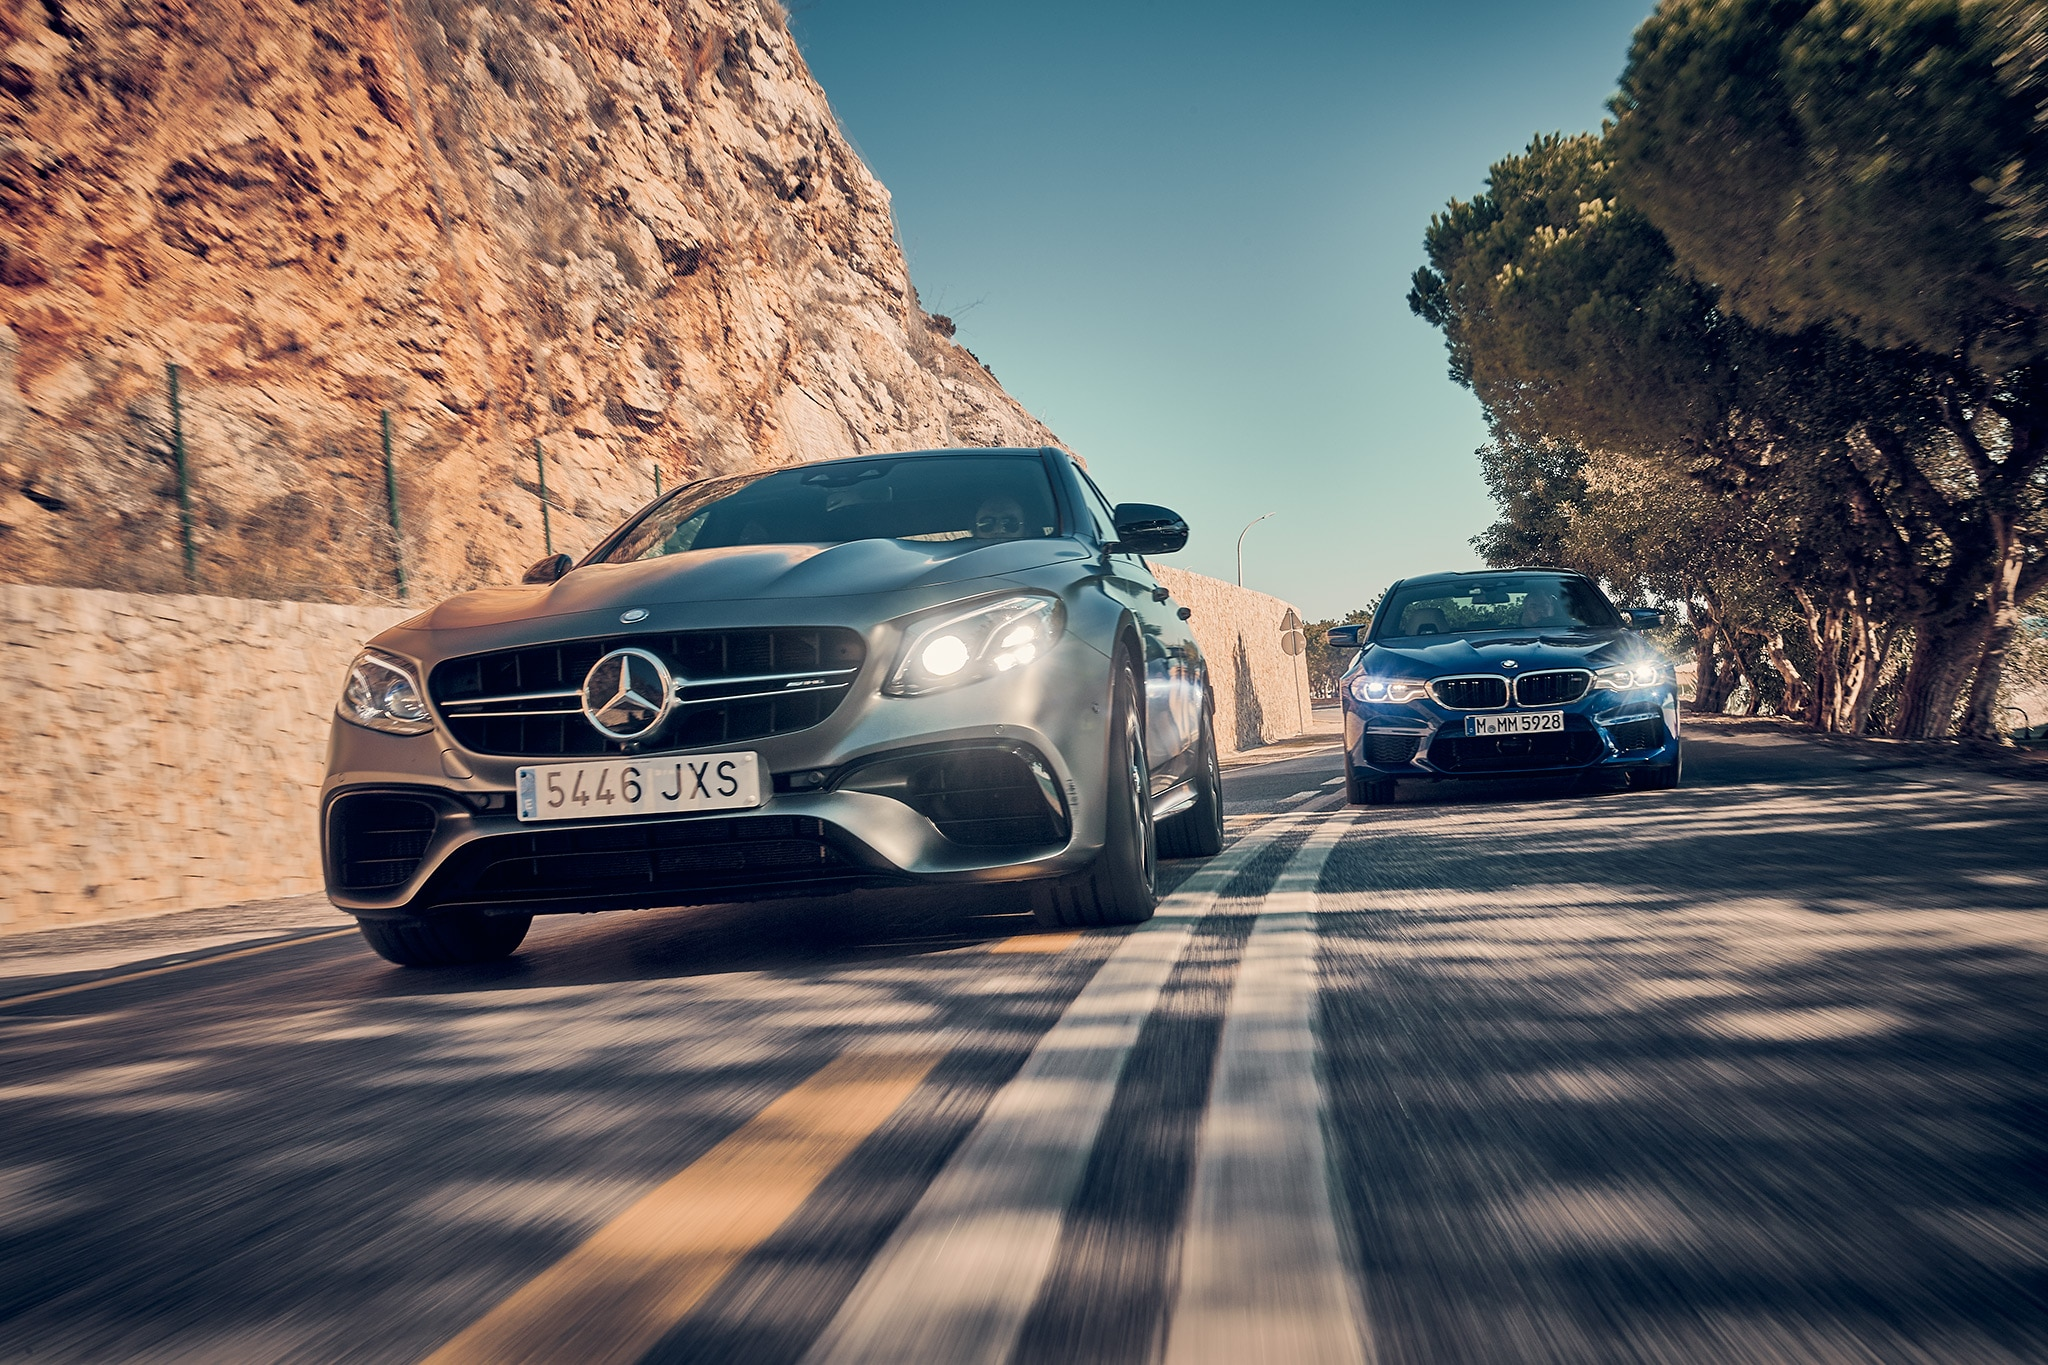 2018 Mercedes Benz E63 S And BMW M5 09 1